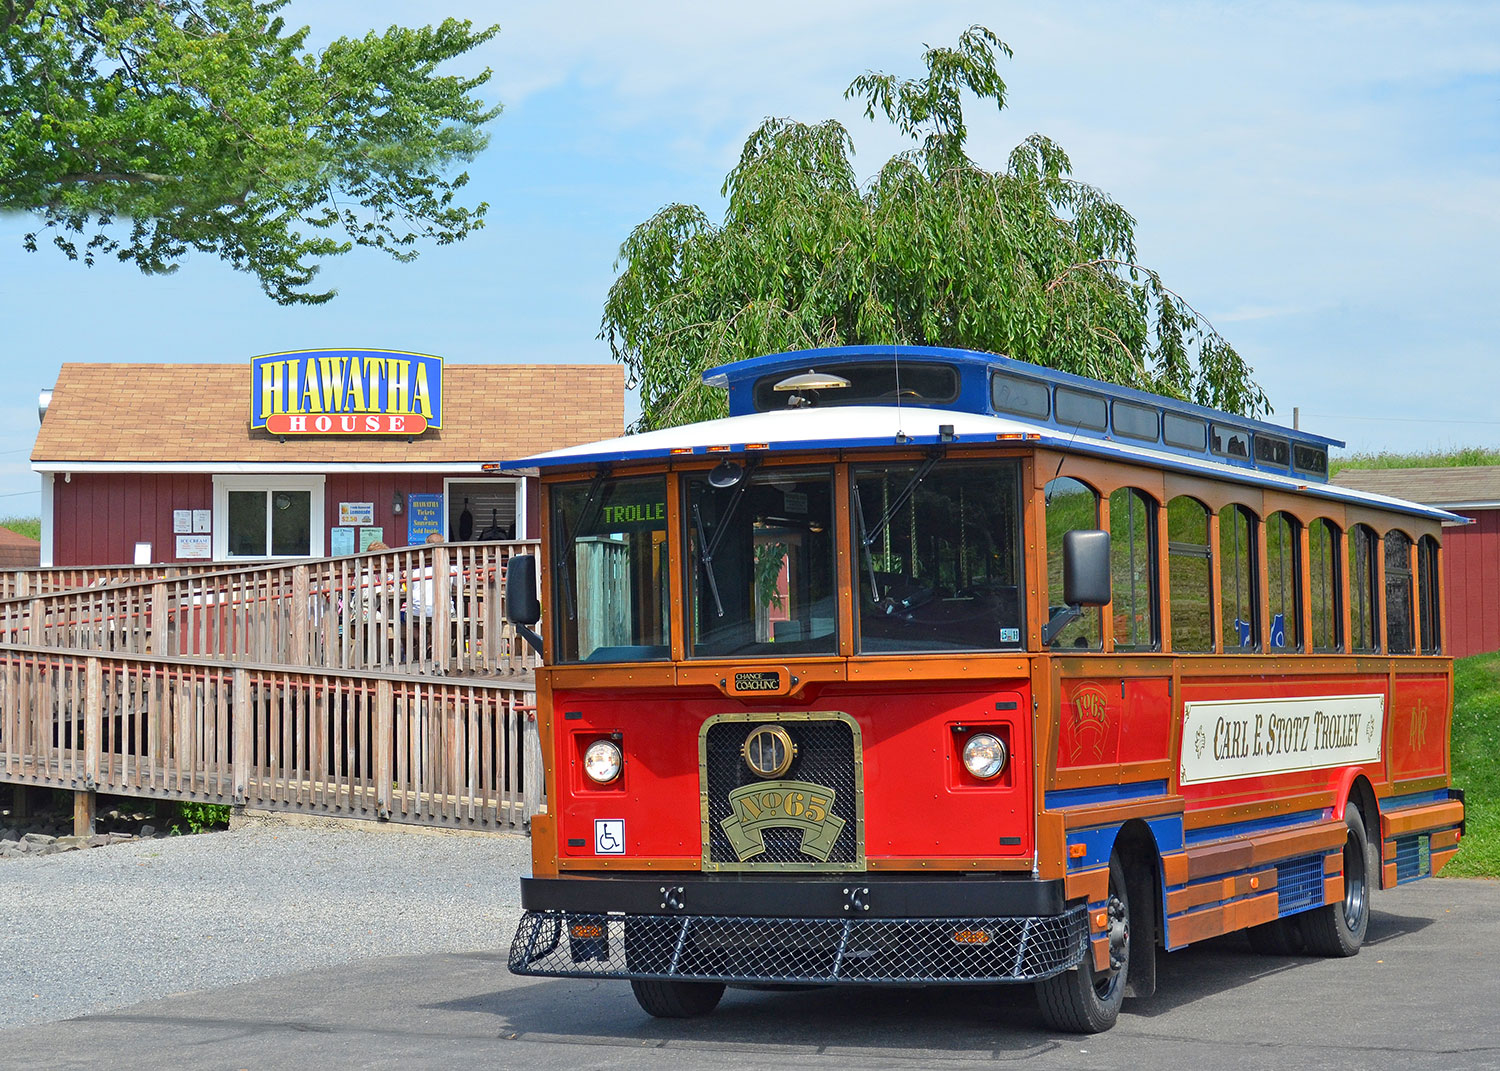 Trolley Rides from the Hiawatha